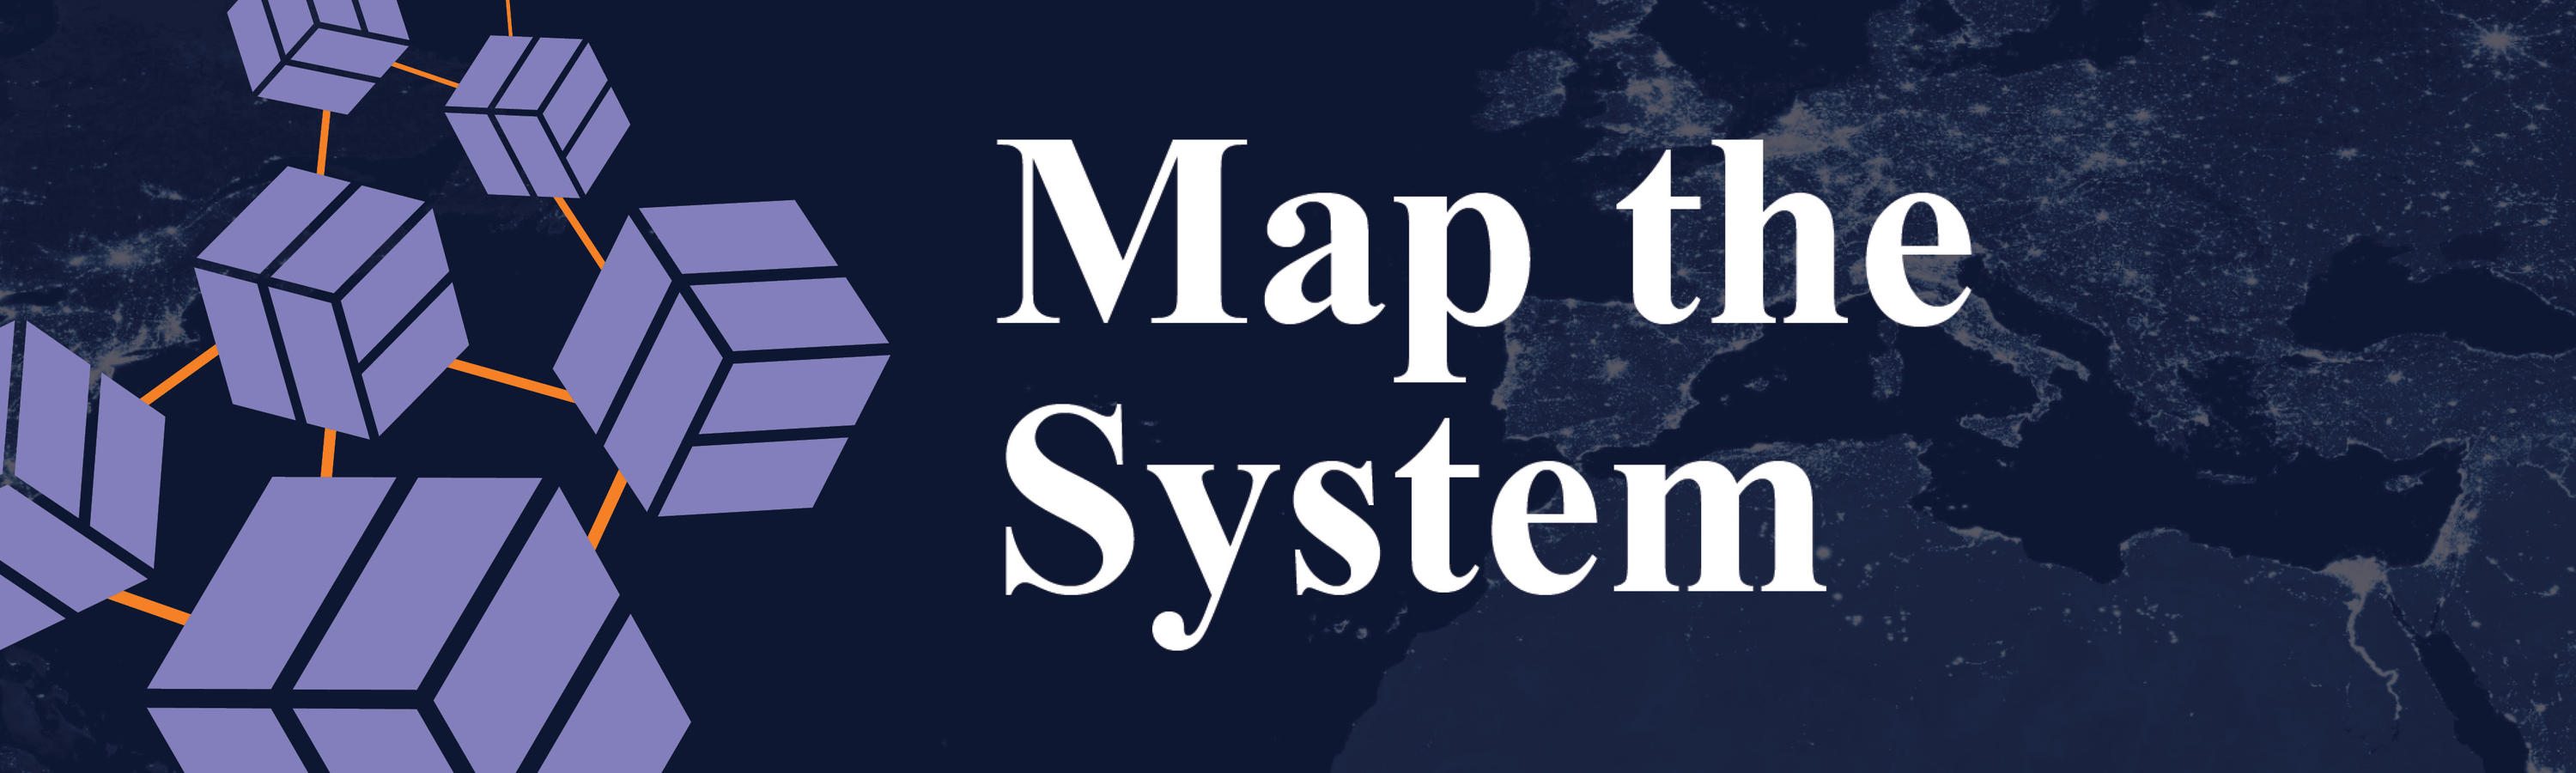 Map the System banner with white text, abstract lavendar cubes and navy blue background.